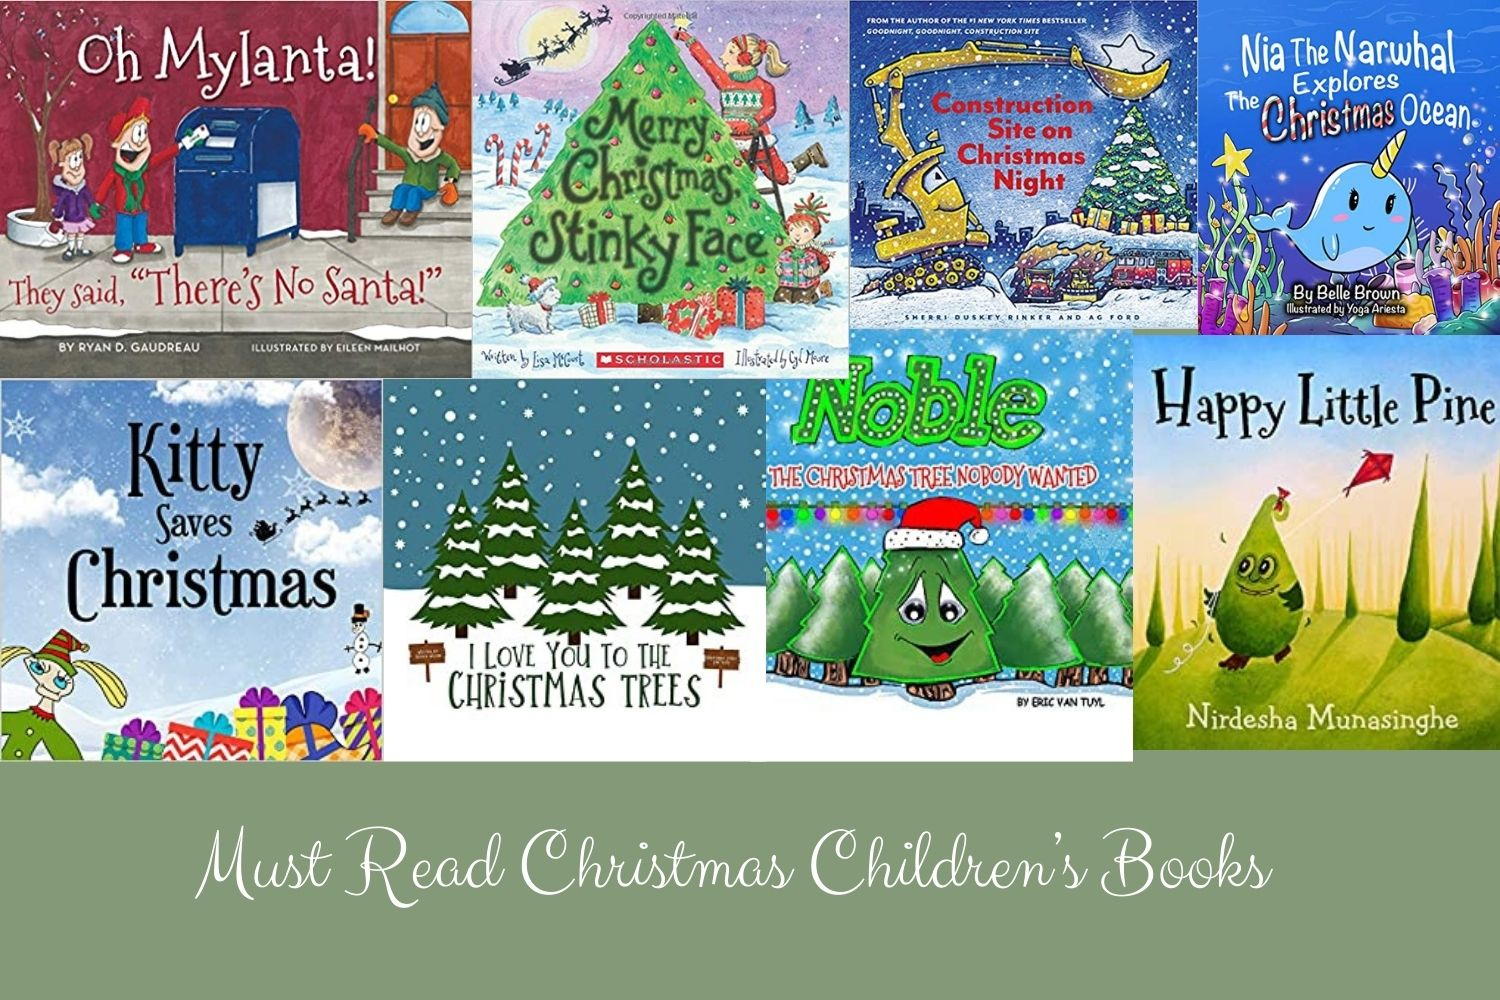 Must Read Christmas Children's Books in 2020